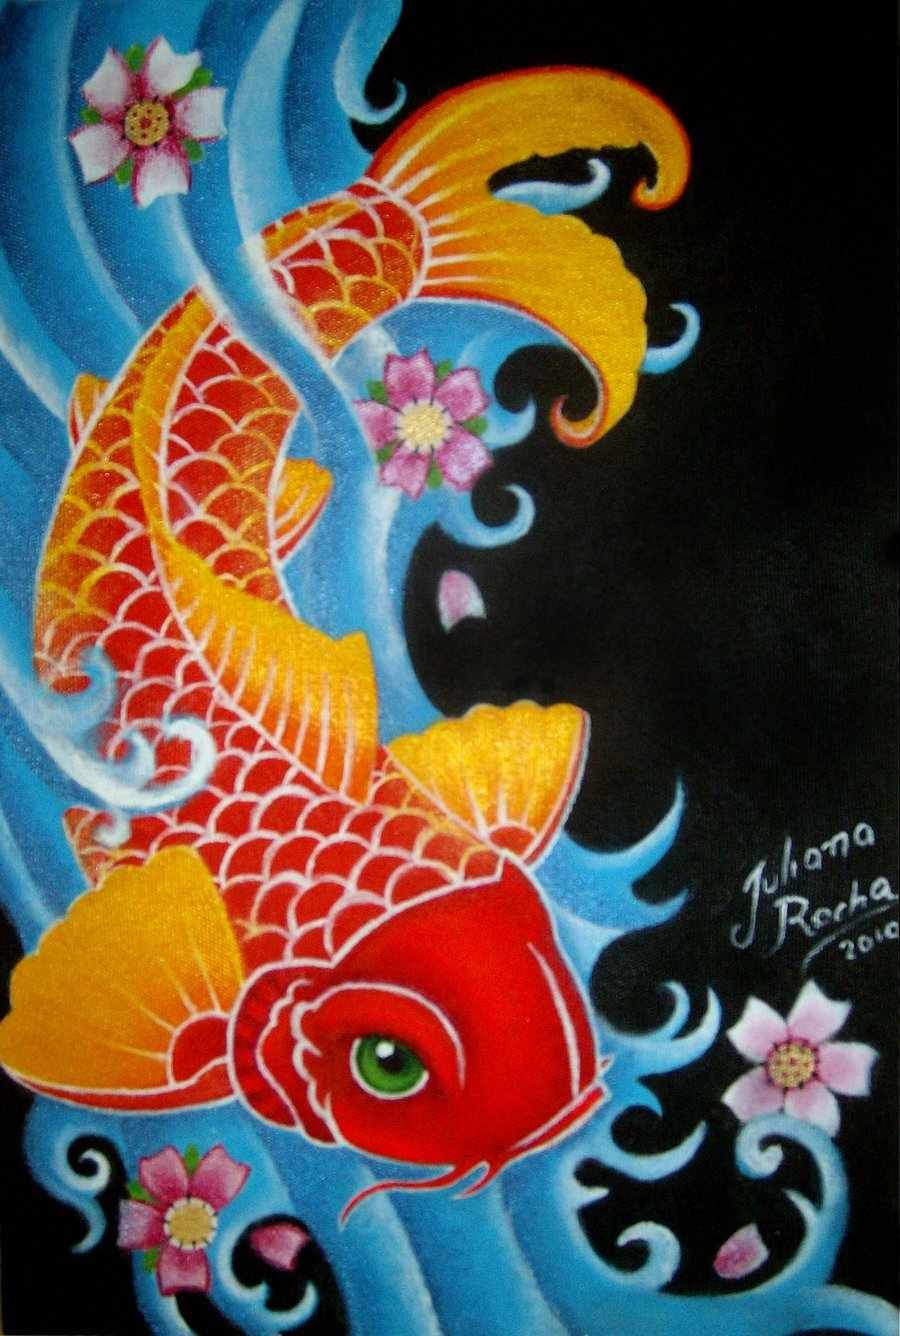 Koi Fish Tattoo Design | Tattoos | Pinterest | Koi fish tattoo, Fish ...